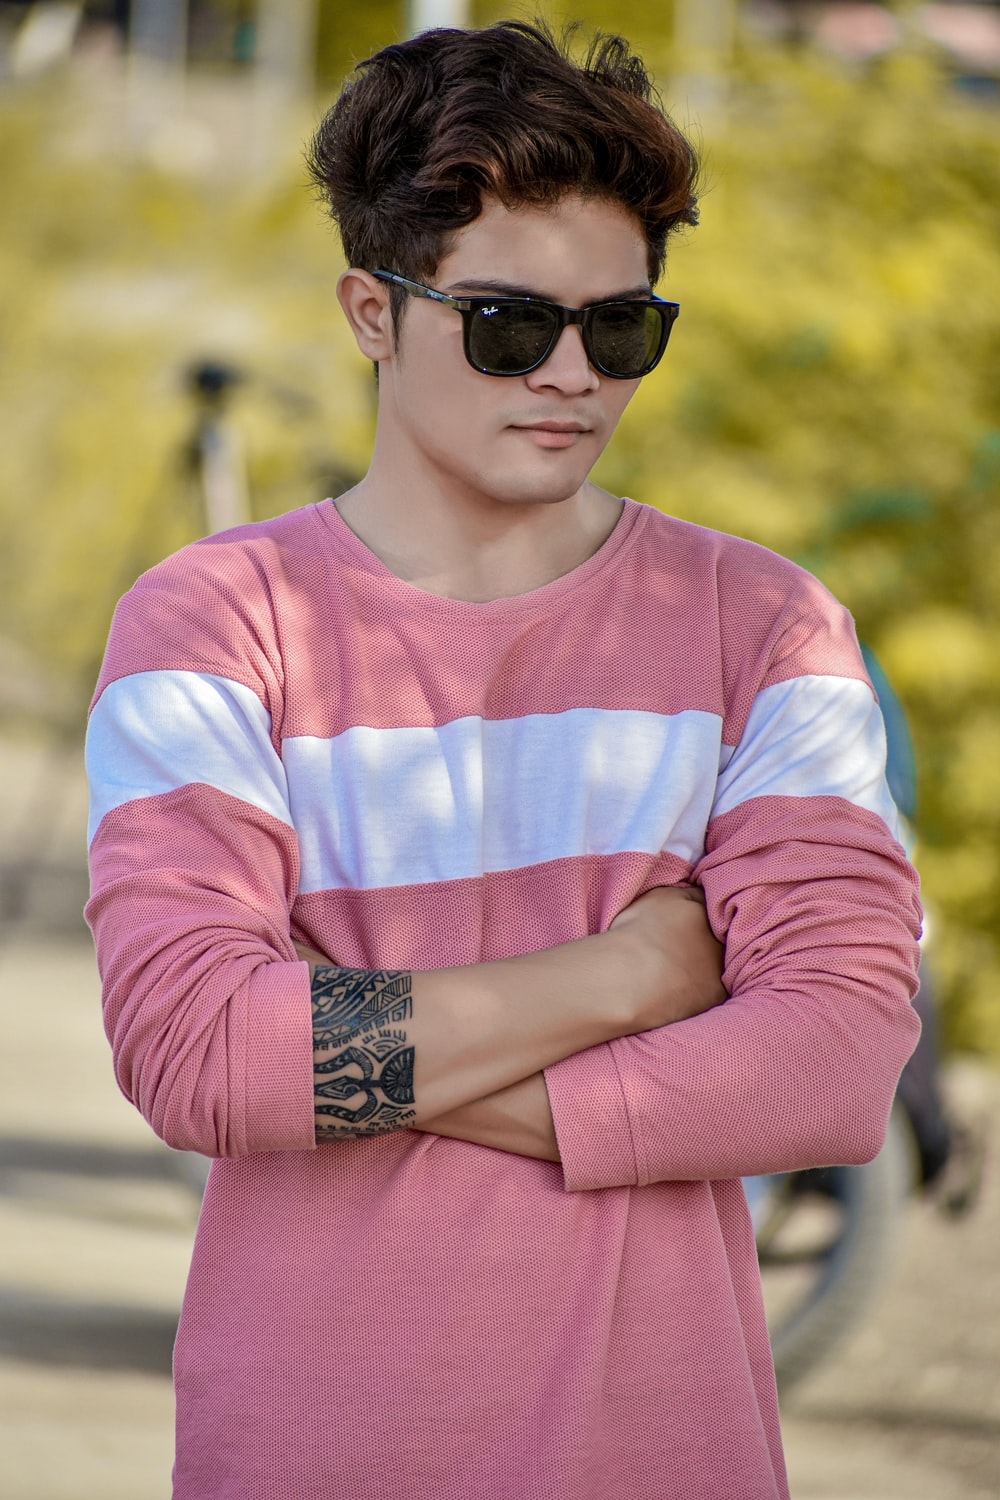 person wearing pink and white shirt